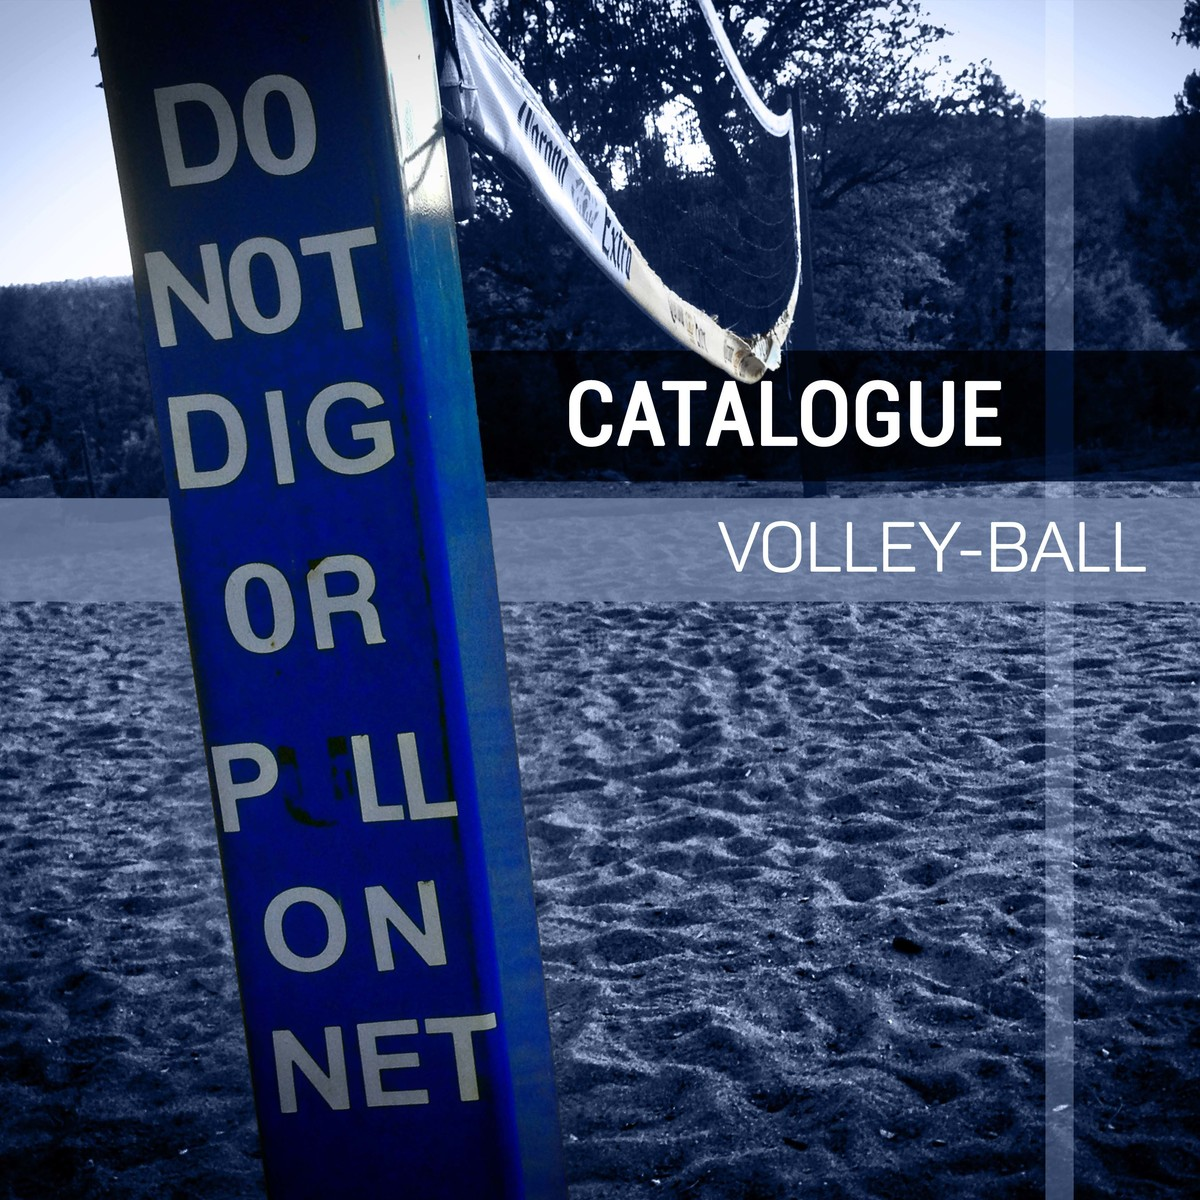 Image_catalogue-volleyball-pre_sentation-2--0-0--490a1b7c-25cf-46b3-b4a5-c49ea61c23dd